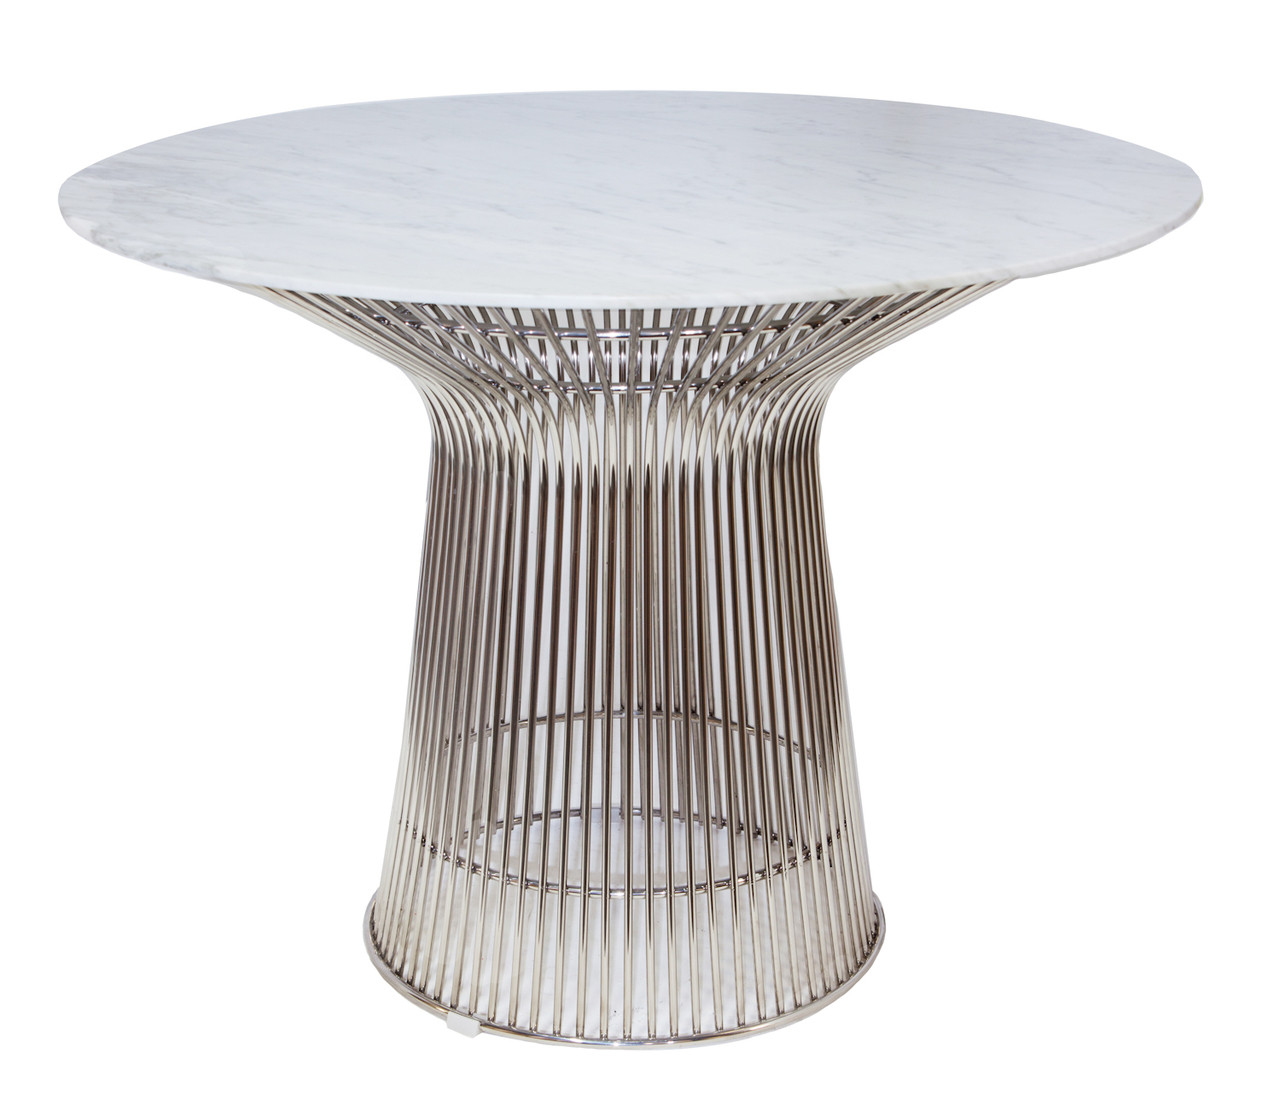 Replica Warren Platner - Wire Dining Table - Stainless Steel - Marble Top - 150cm